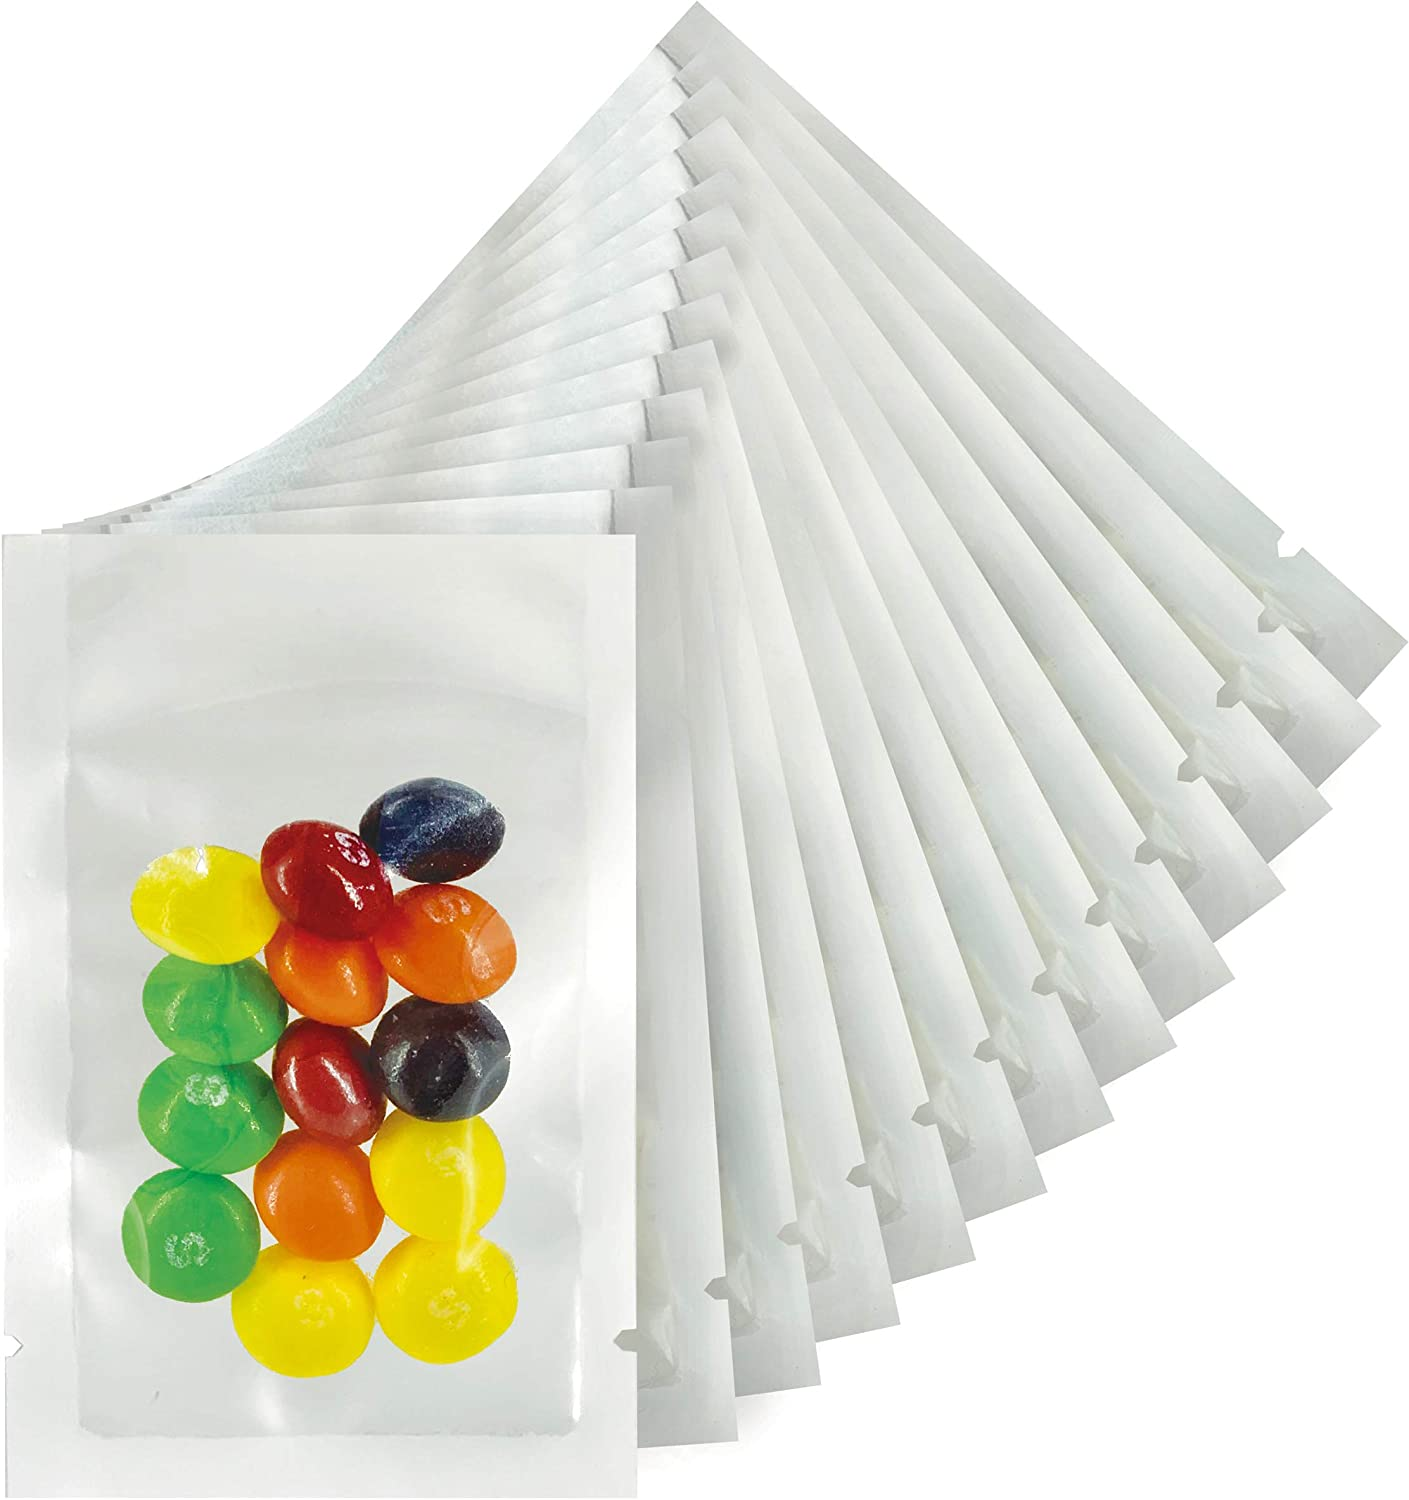 1000 Count Mylar Heat Seal Bags - White and Clear Mylar Vacuum Seal Bags - Food Grade Sealable Bags for Packaging and Samples - Small Flat Sample Bags Sealable With Tear Notch (2.5 x 3.5 inch)